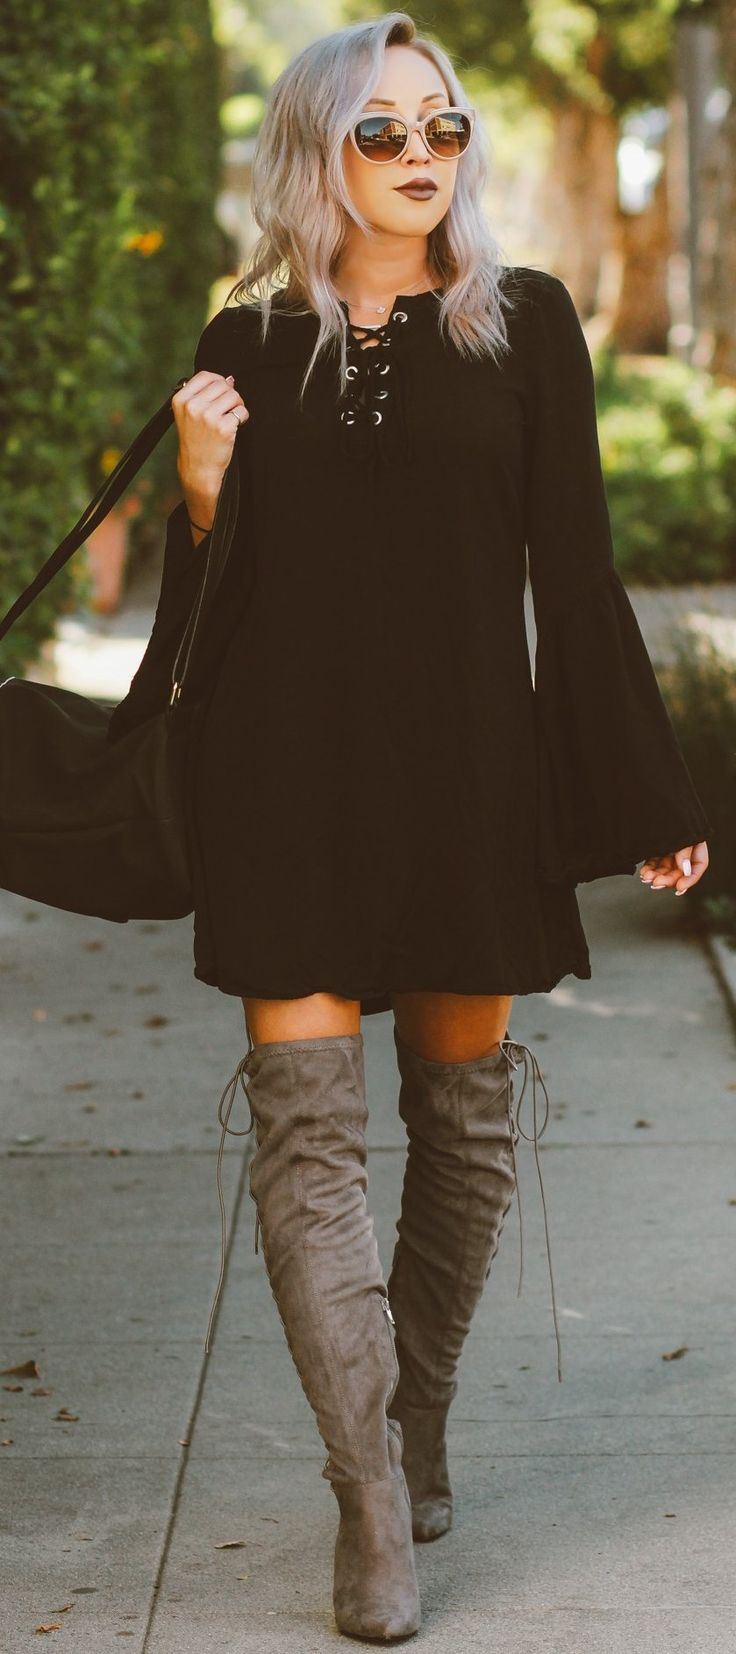 1000+ Ideas About Thigh High Boots On Pinterest